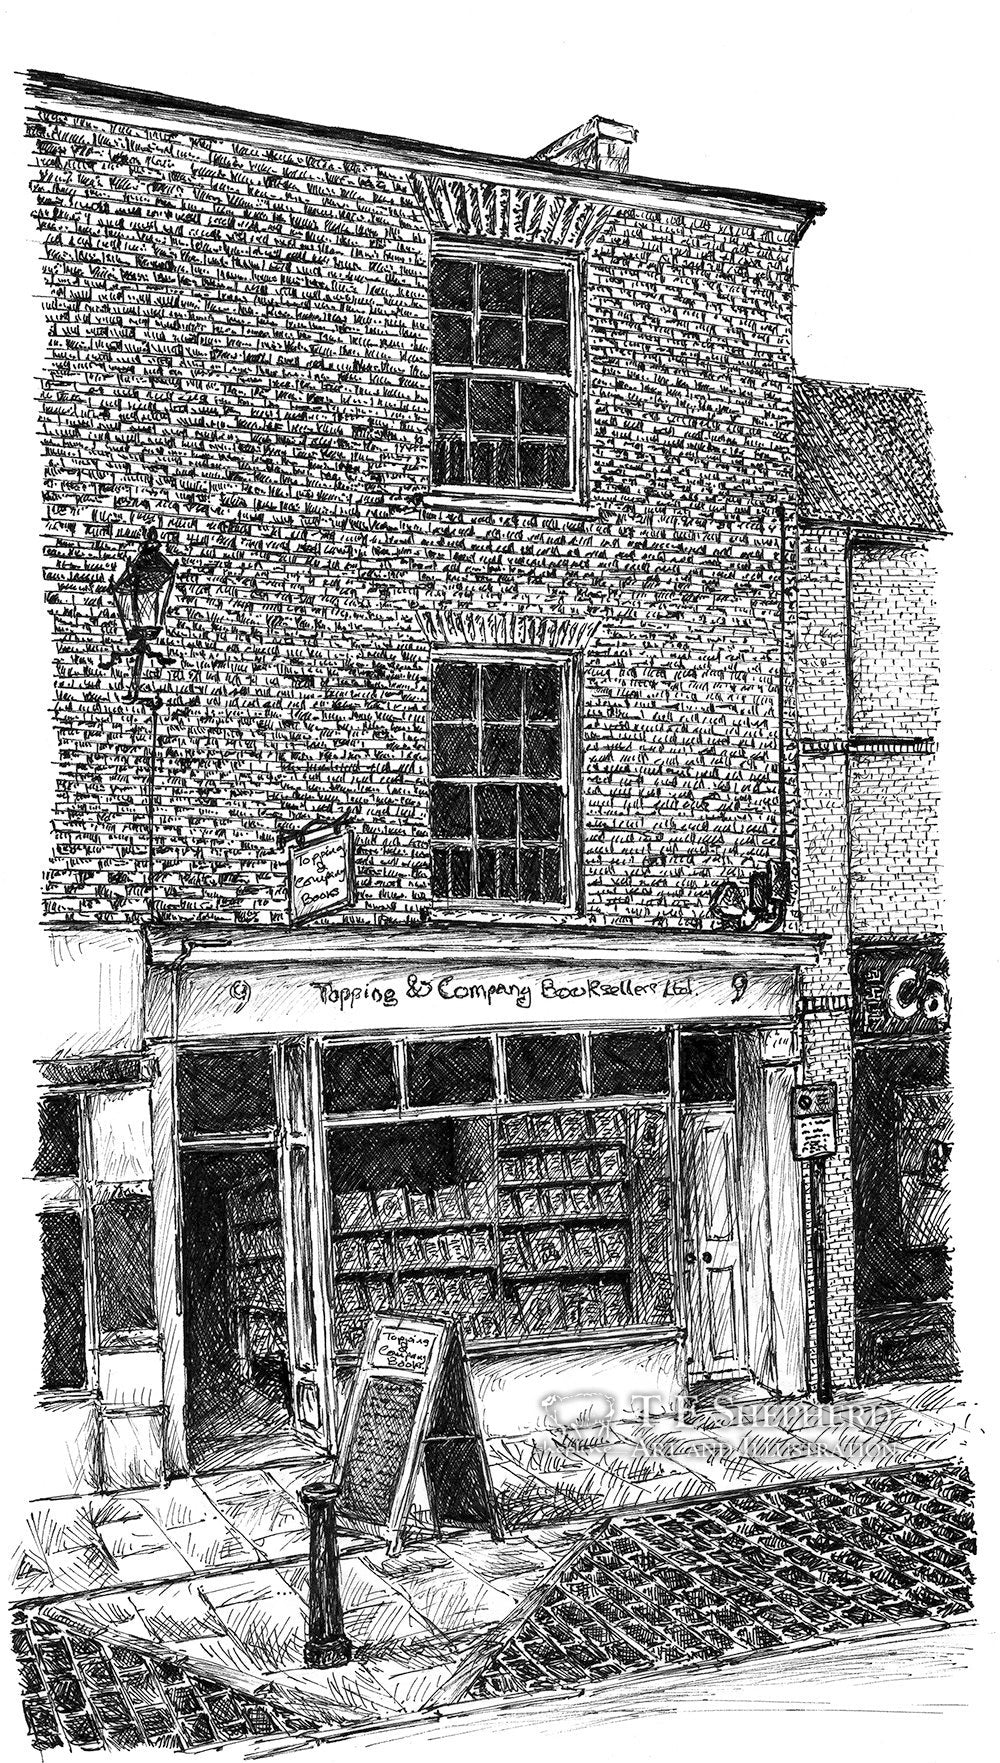 Topping and Company Booksellers, Ely *Original*